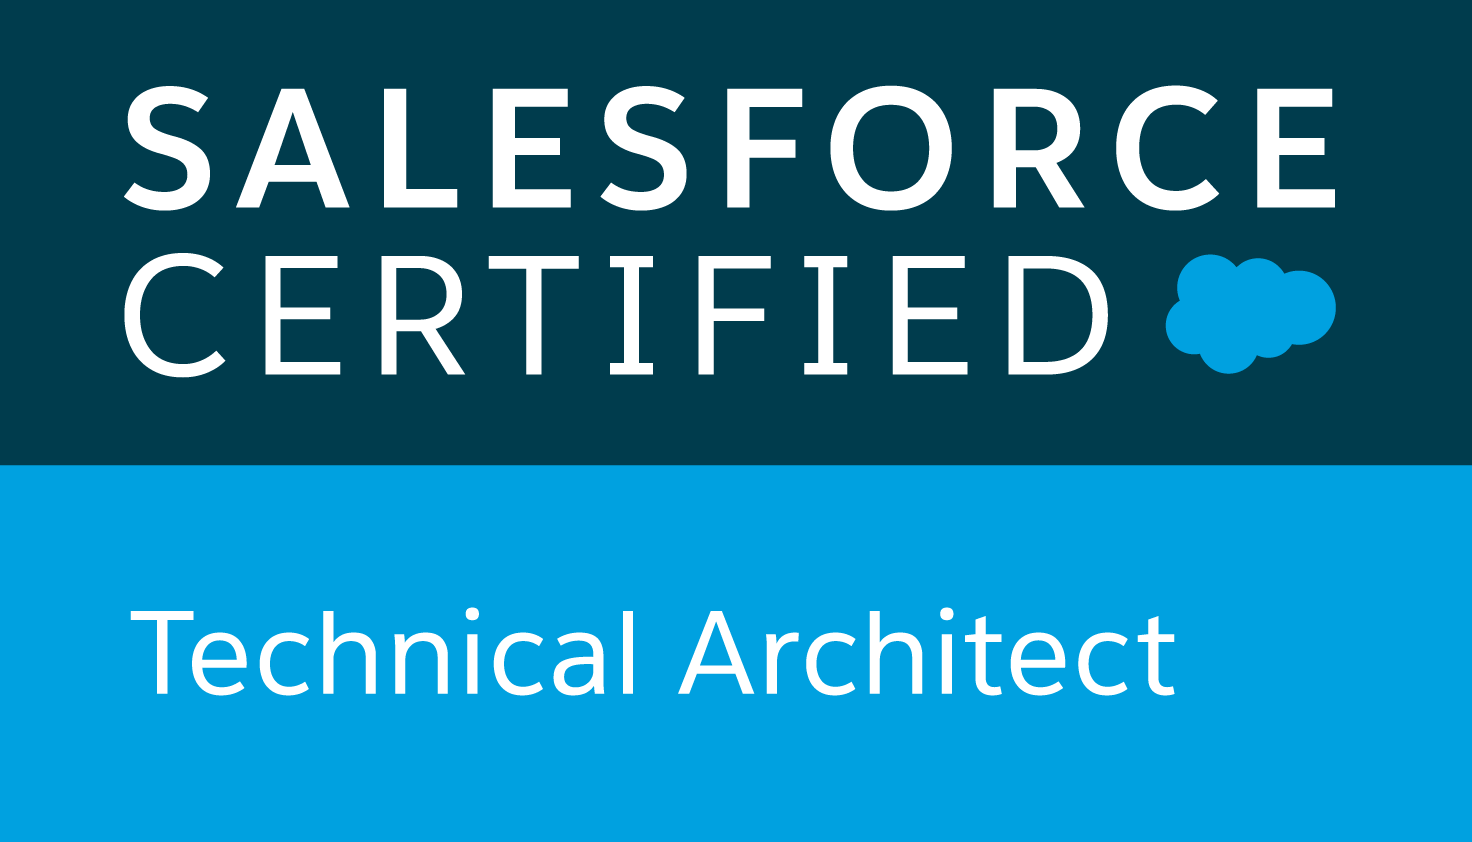 Technical Architect